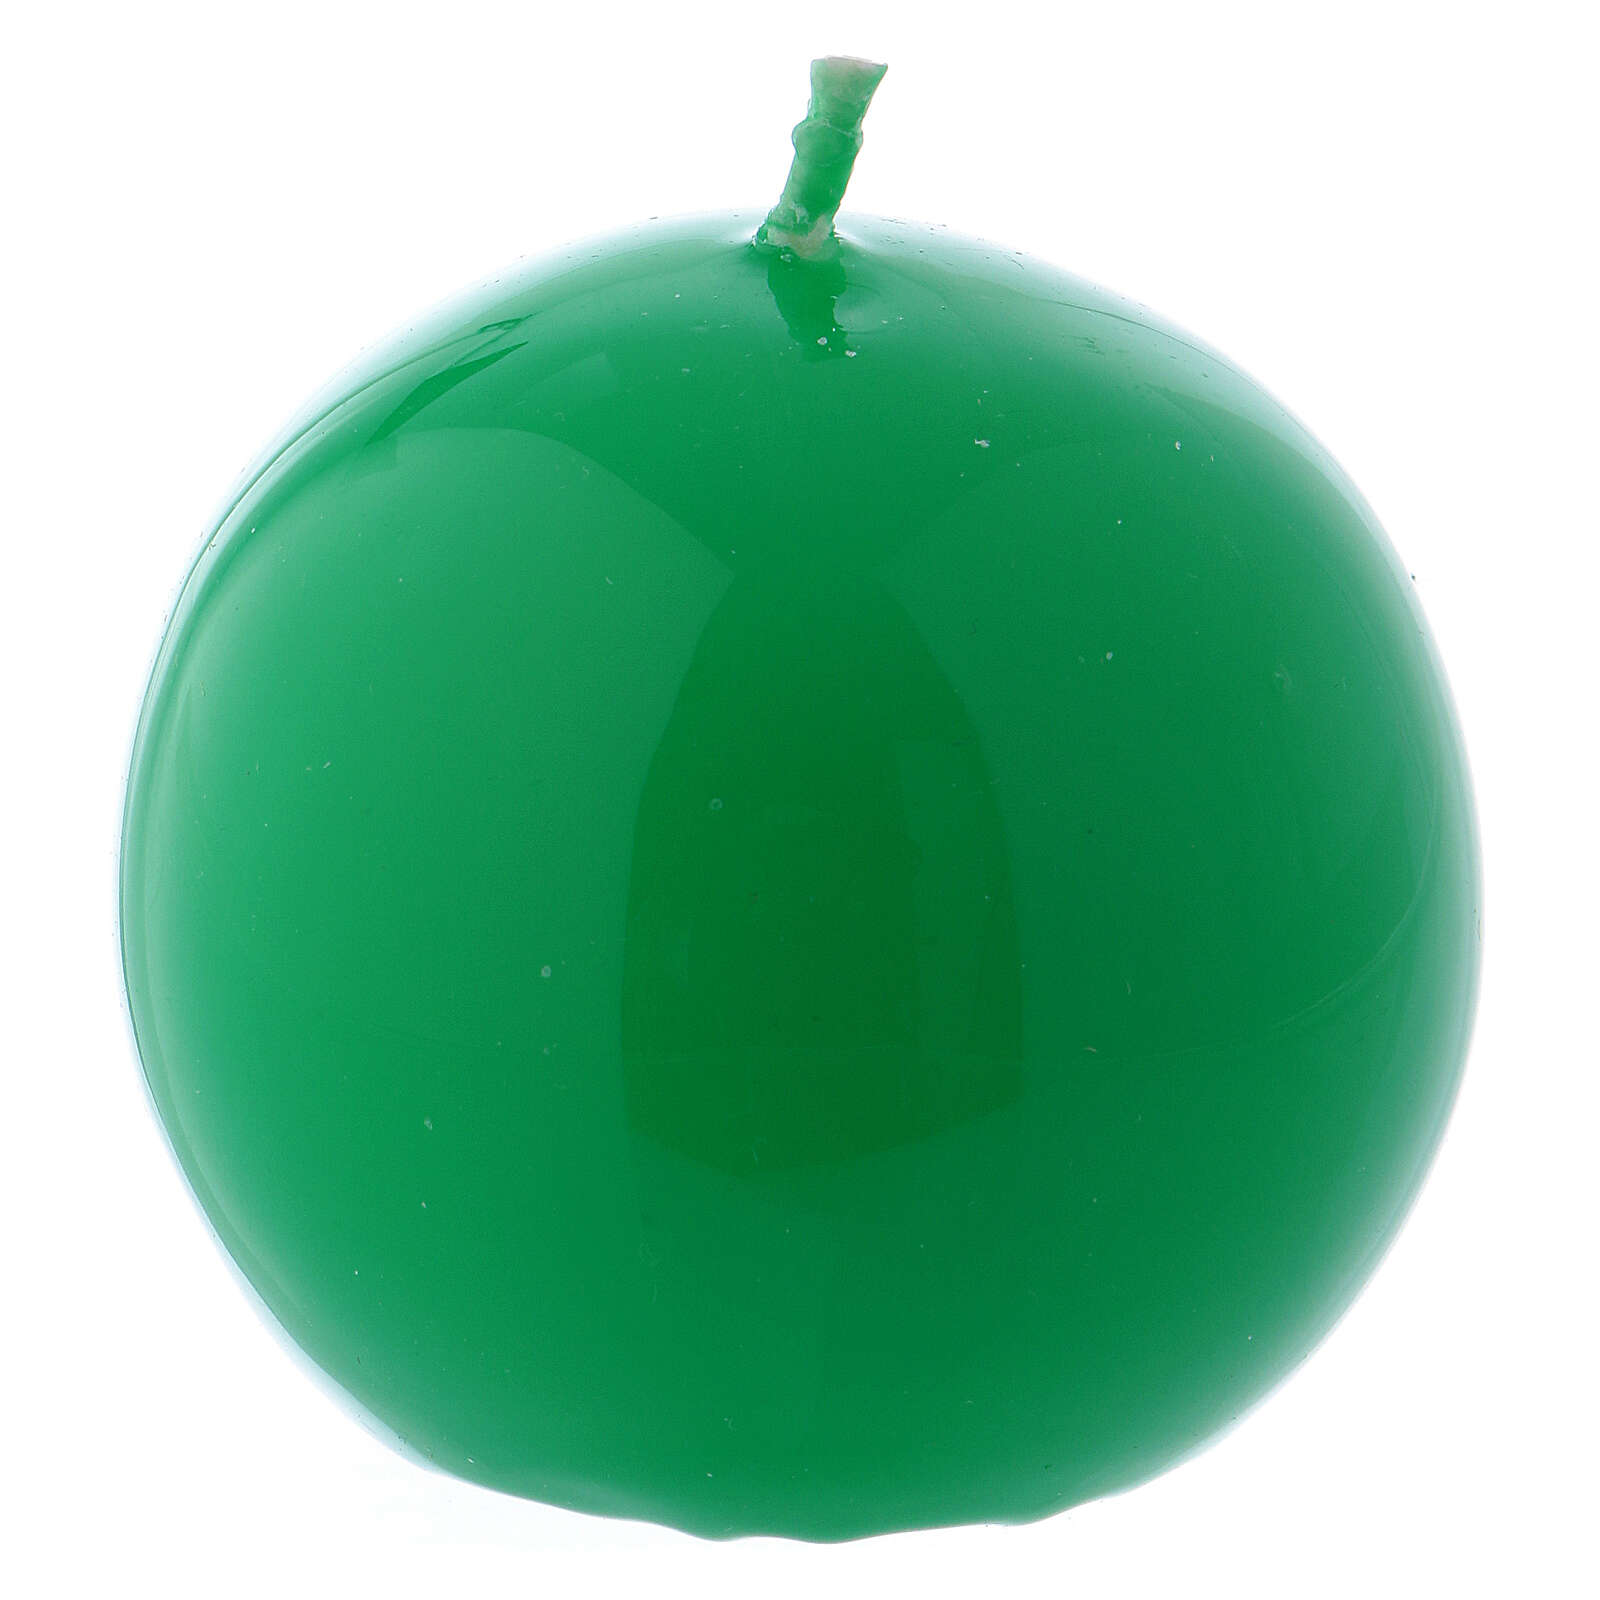 Shiny Sphere Candle Ceralacca, d. 6 cm green 3